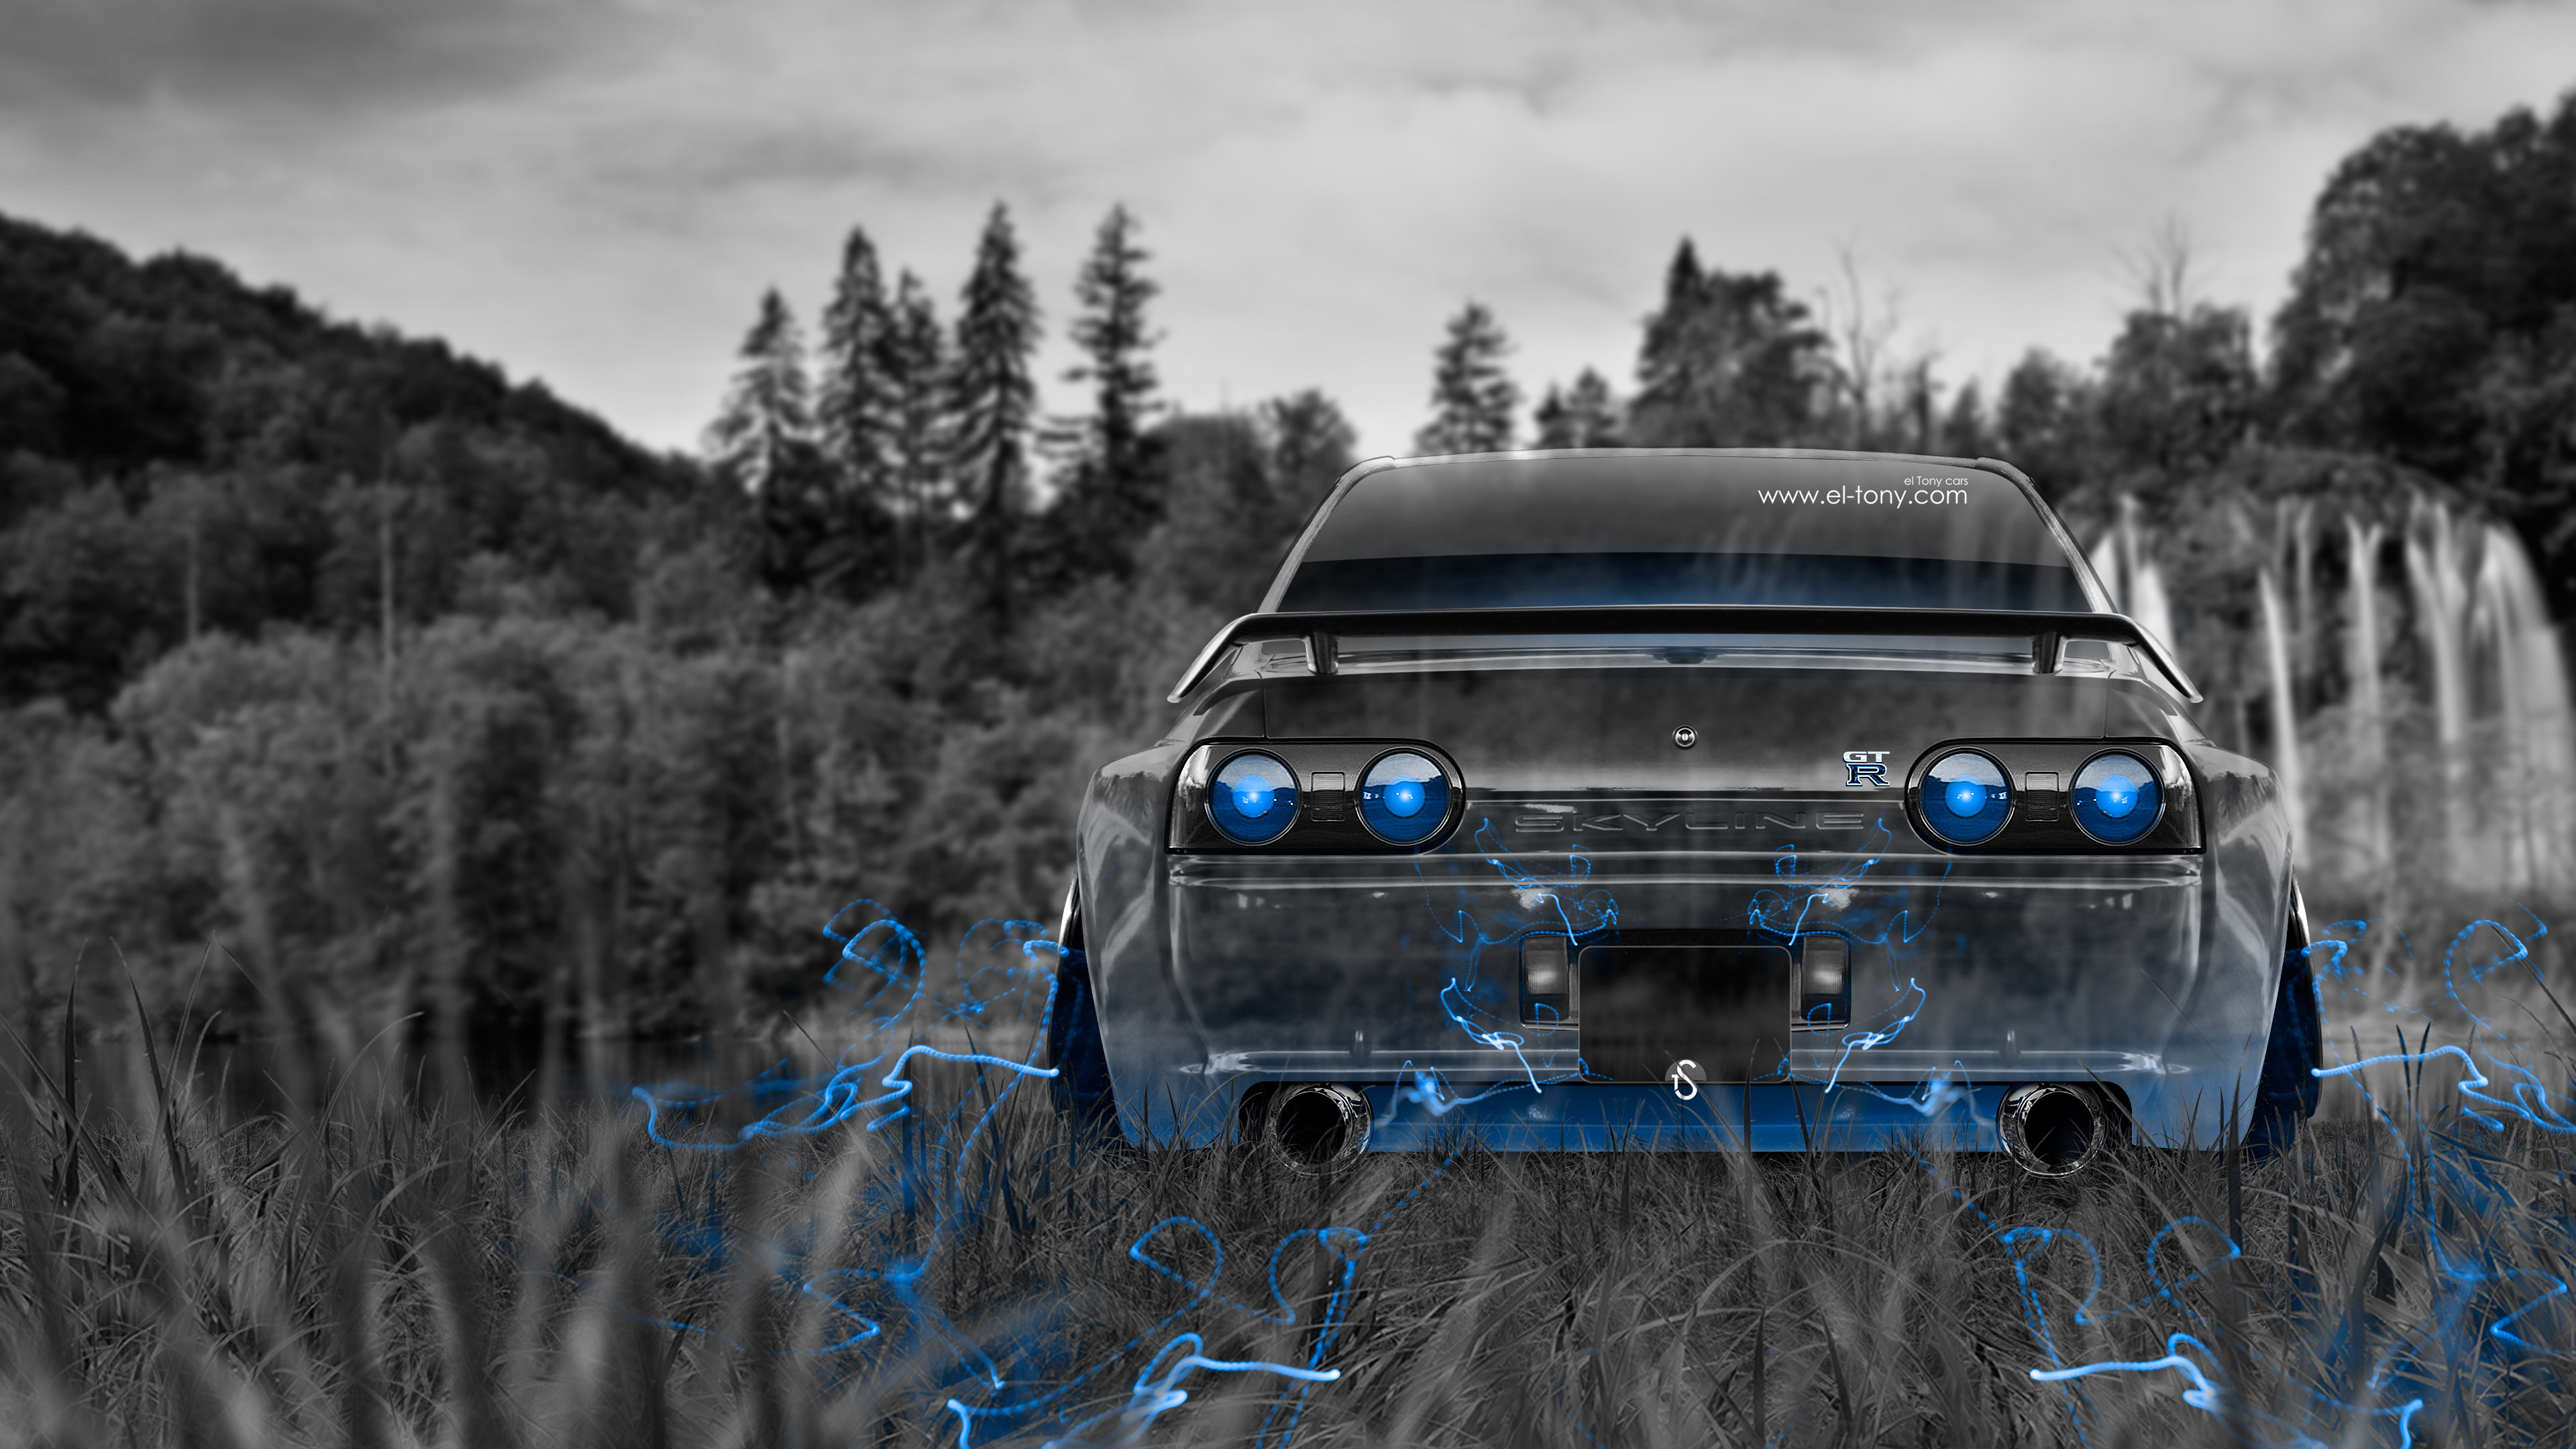 3840x2160 <b>Nissan Skyline</b> GTR R34 Anime Aerography Smoke Car 2014